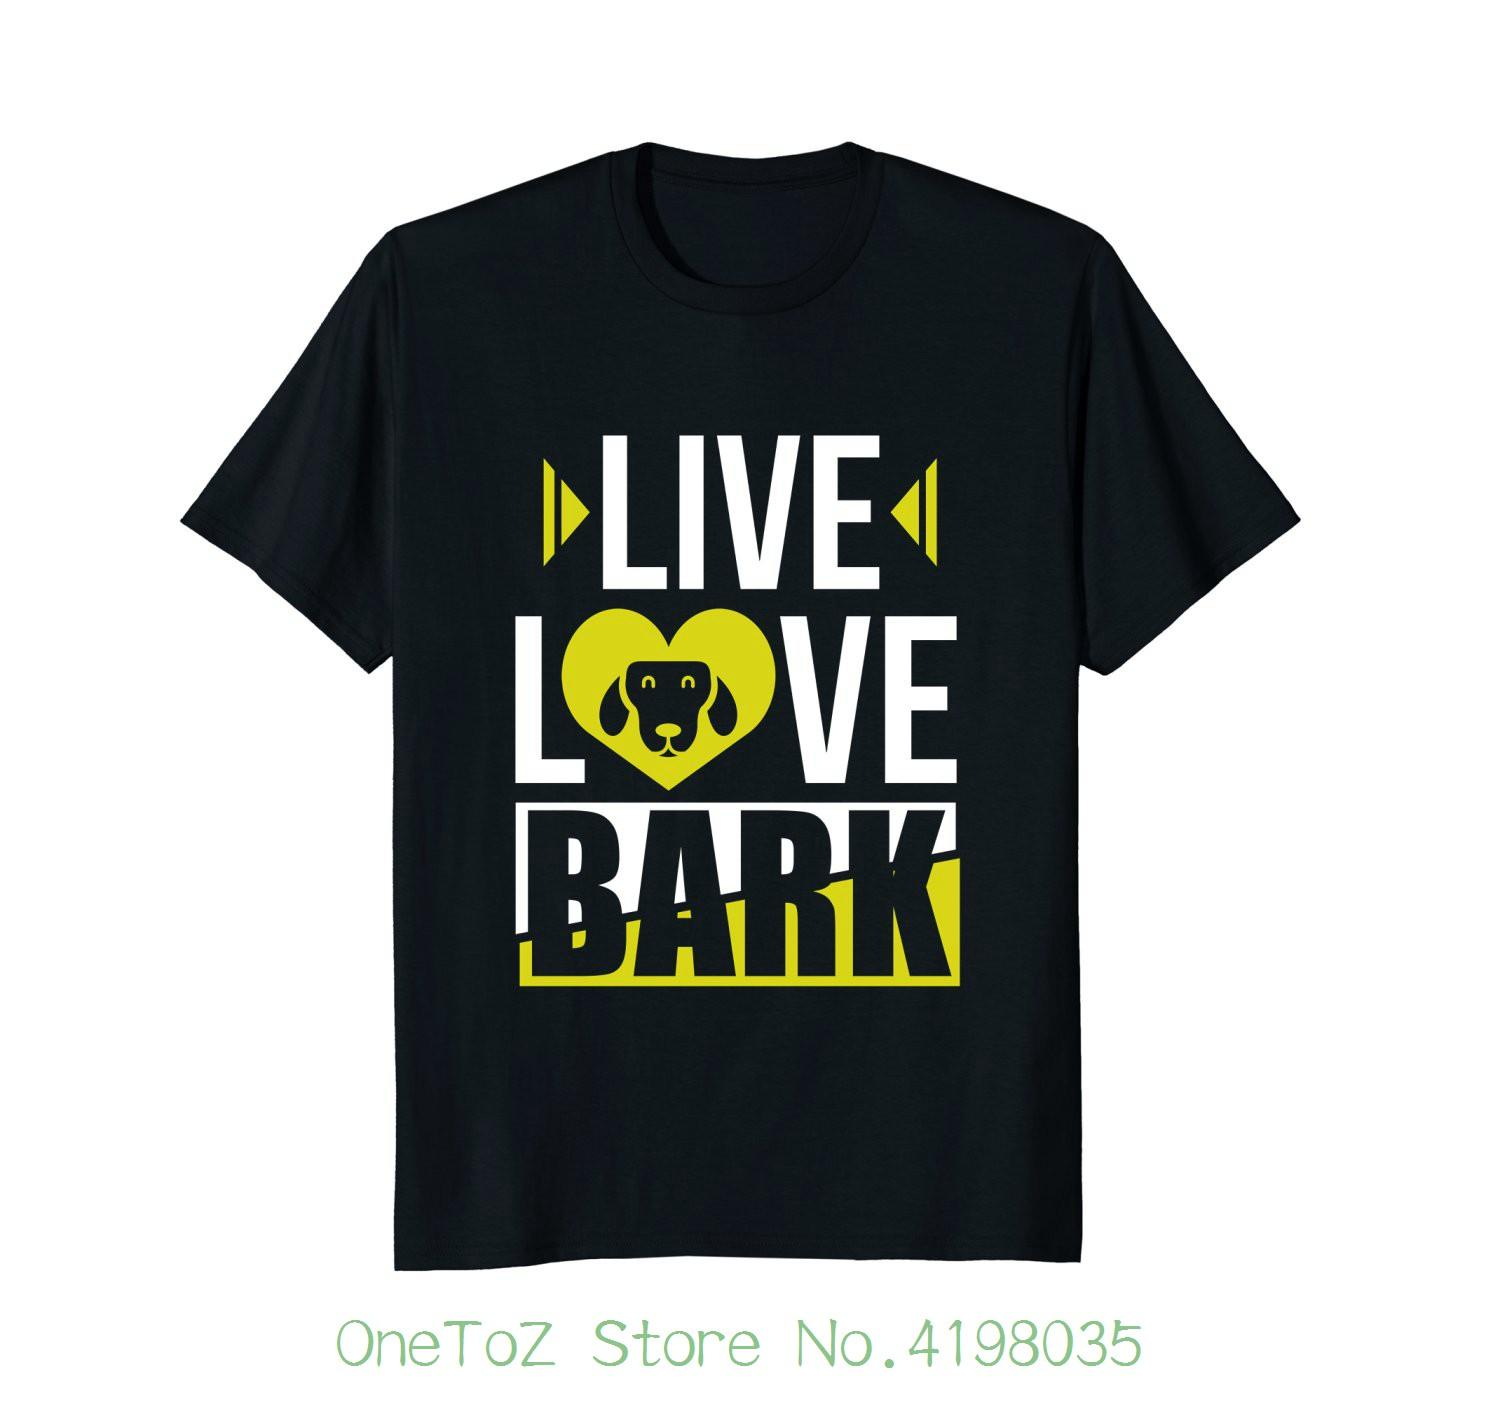 7f4ca08d Live Love Bark Funny Dog Lover Tshirt , Dog Mon Or Dad Tee Pure Cotton  Round Collar Men Tees Design T Shirt Of The Day From Onetozstore, $24.2|  DHgate.Com